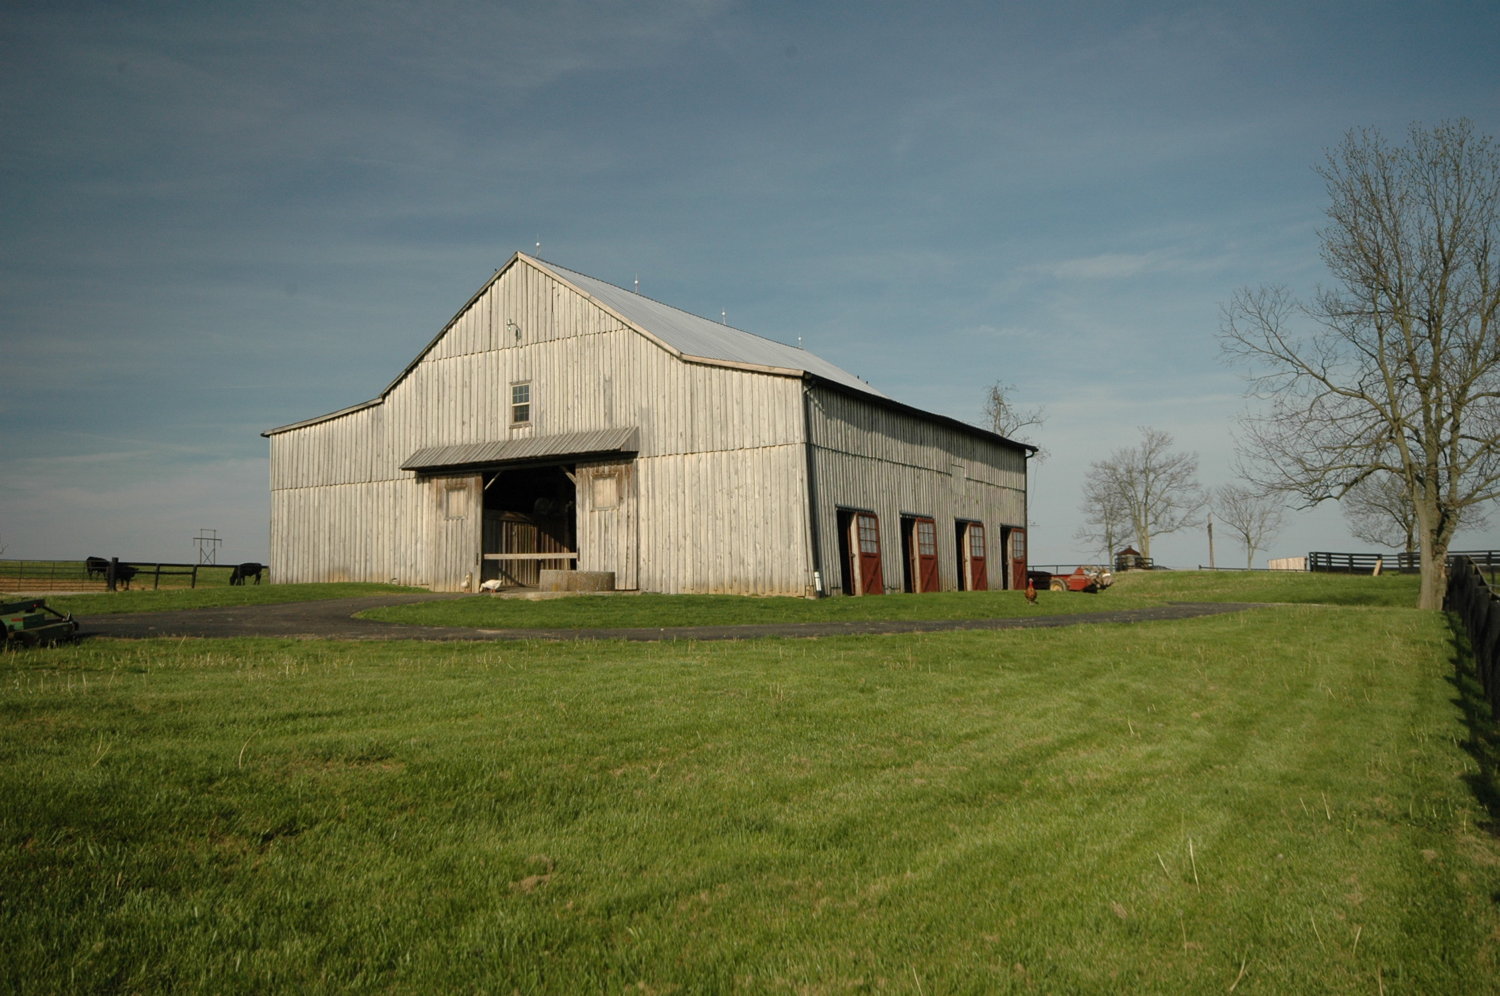 00-ss-barn2.png